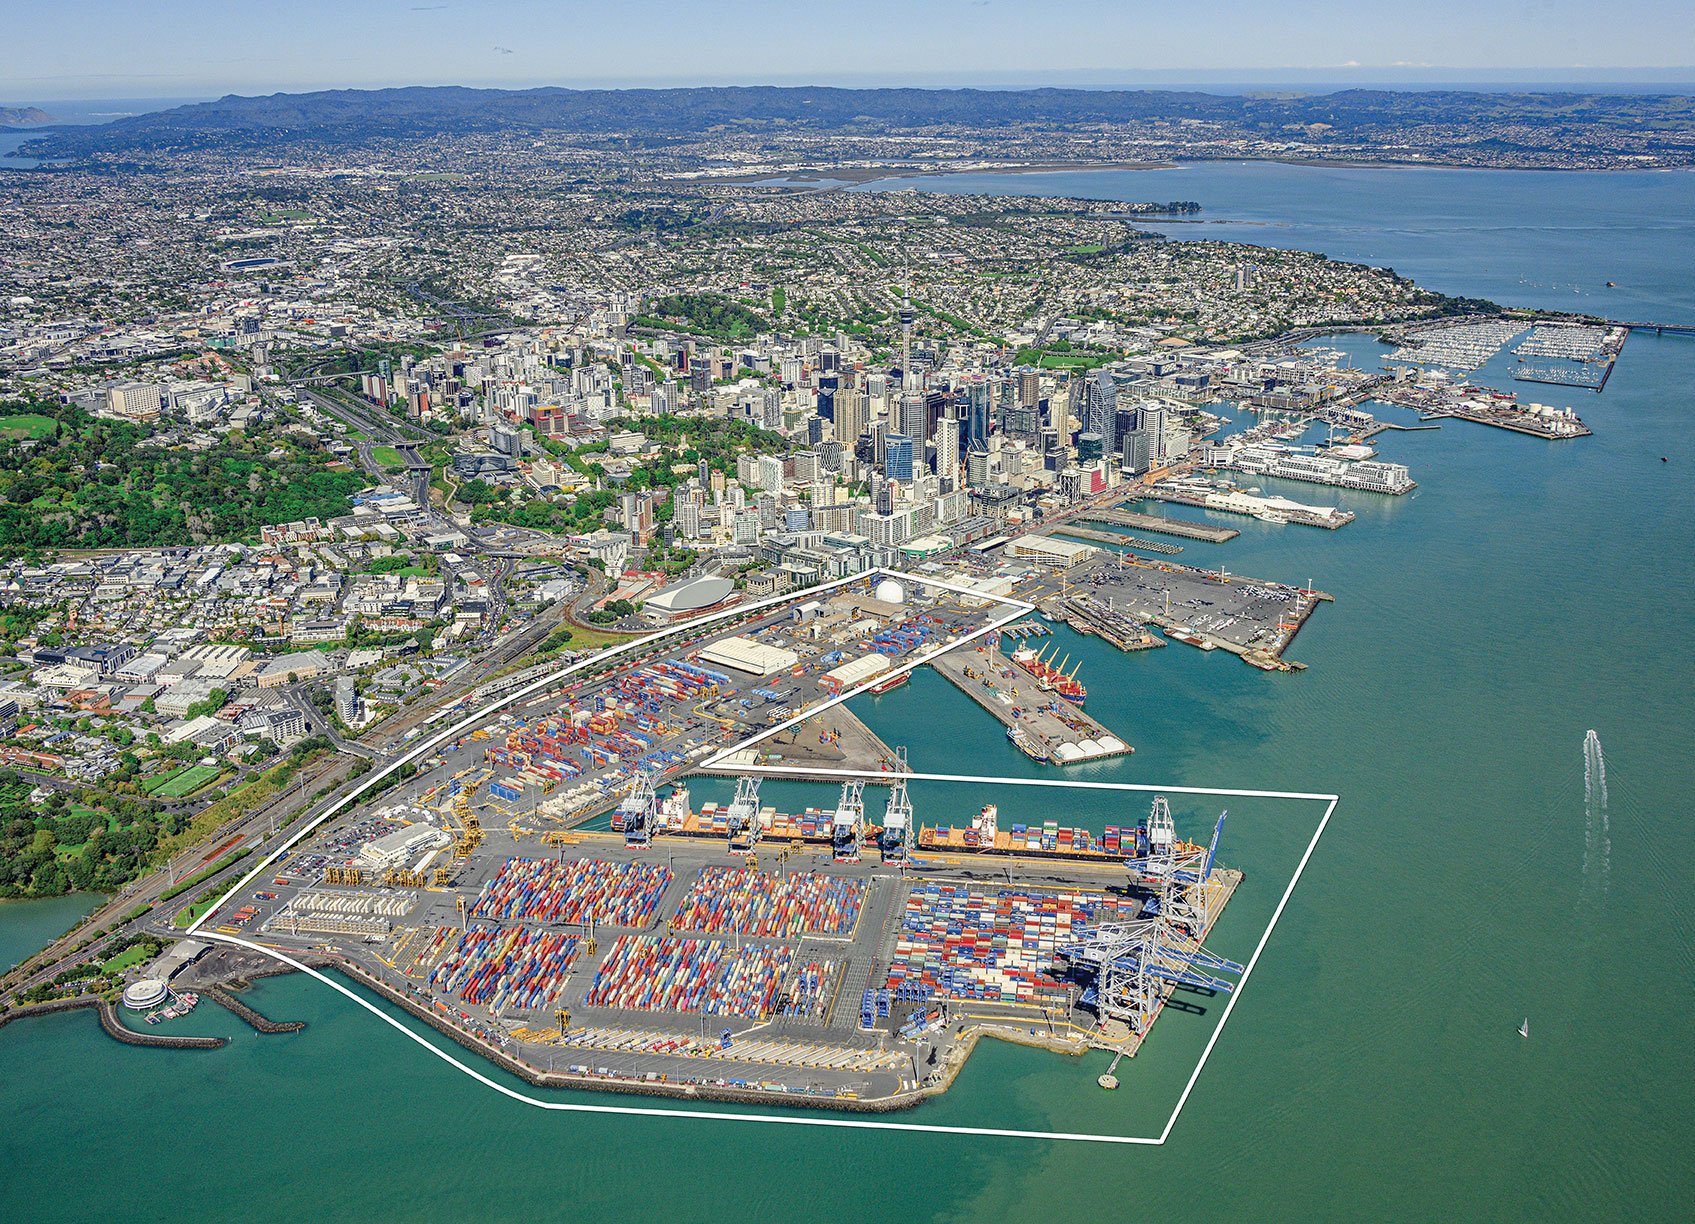 Figure 1. The Ports of Auckland covers 140 acres at the doorstep of Auckland's central business district. The outline shows the approximate coverage of the LocataNet local positioning system (landside only). (Photo: Ross Clark/Ports of Auckland)